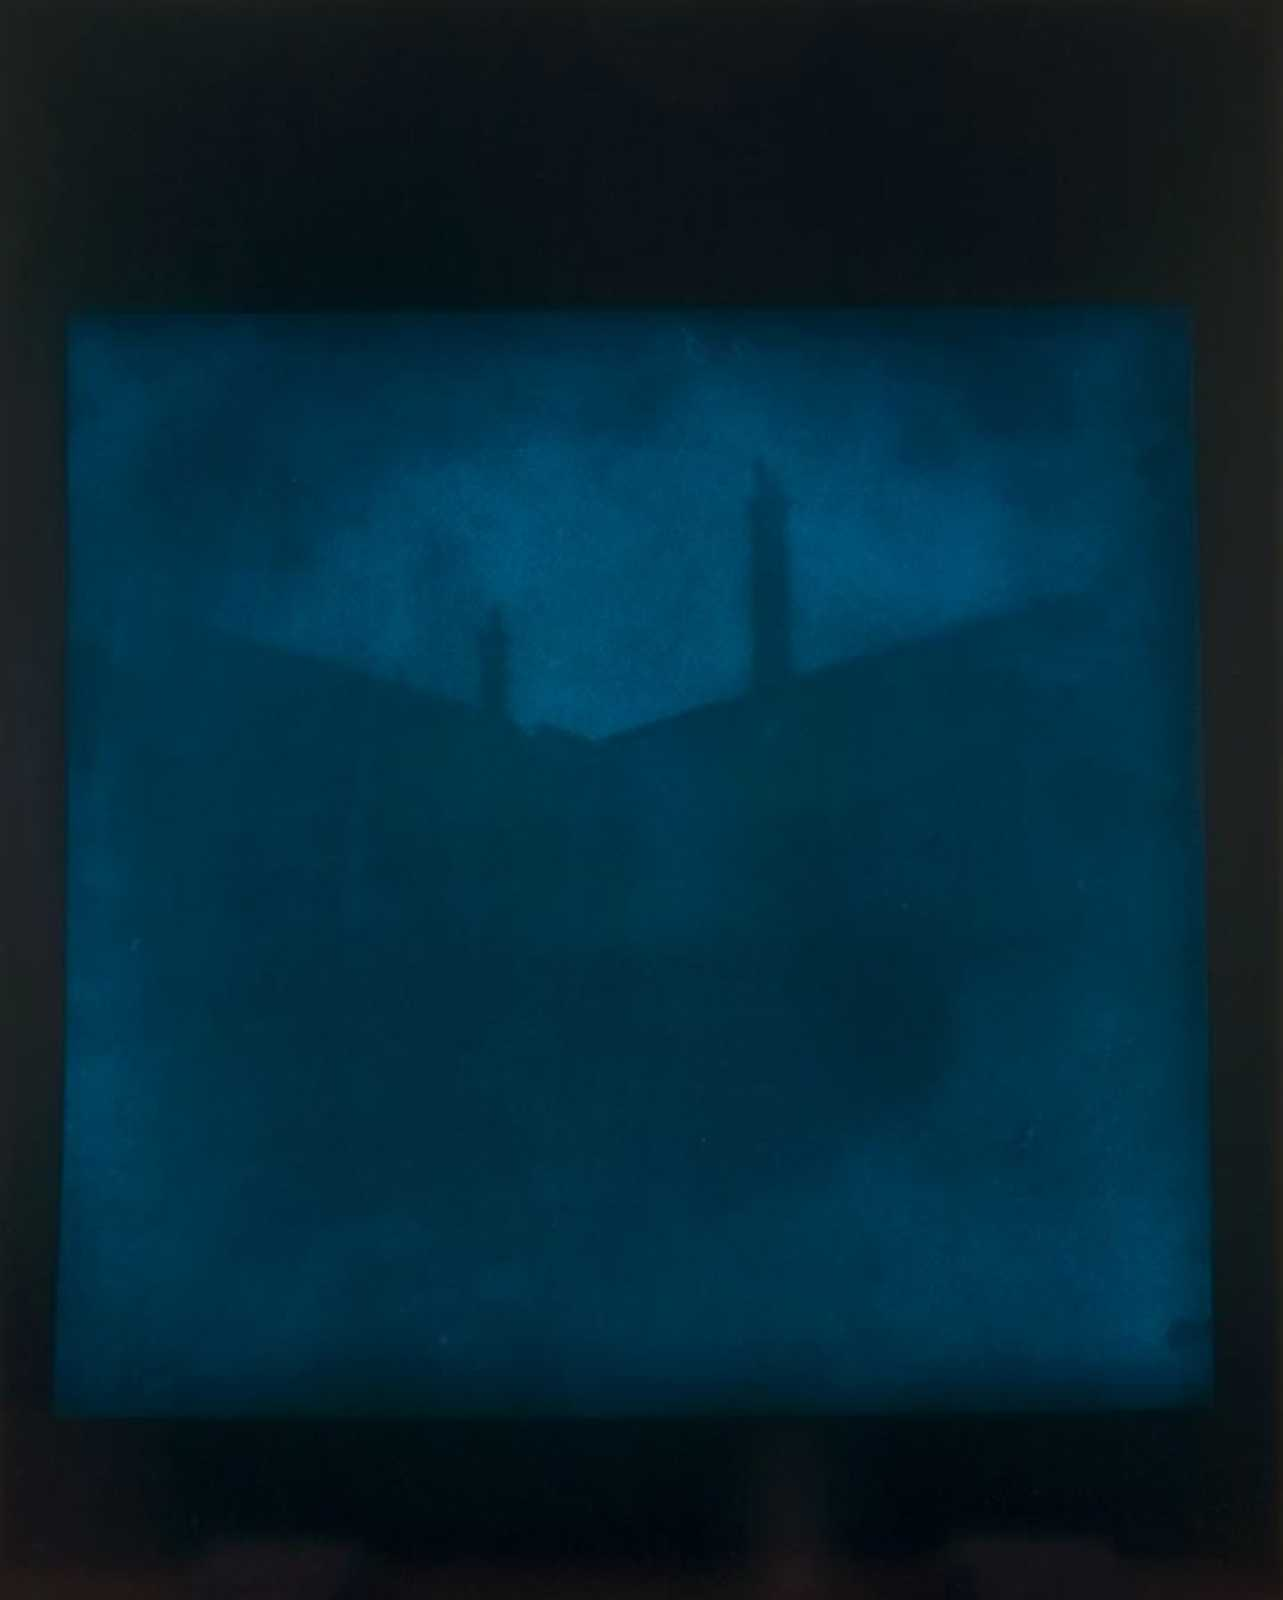 Hiroshi Sugimoto, Roofline of Lacock Abbey, Most Likely 1835-1839, 2008